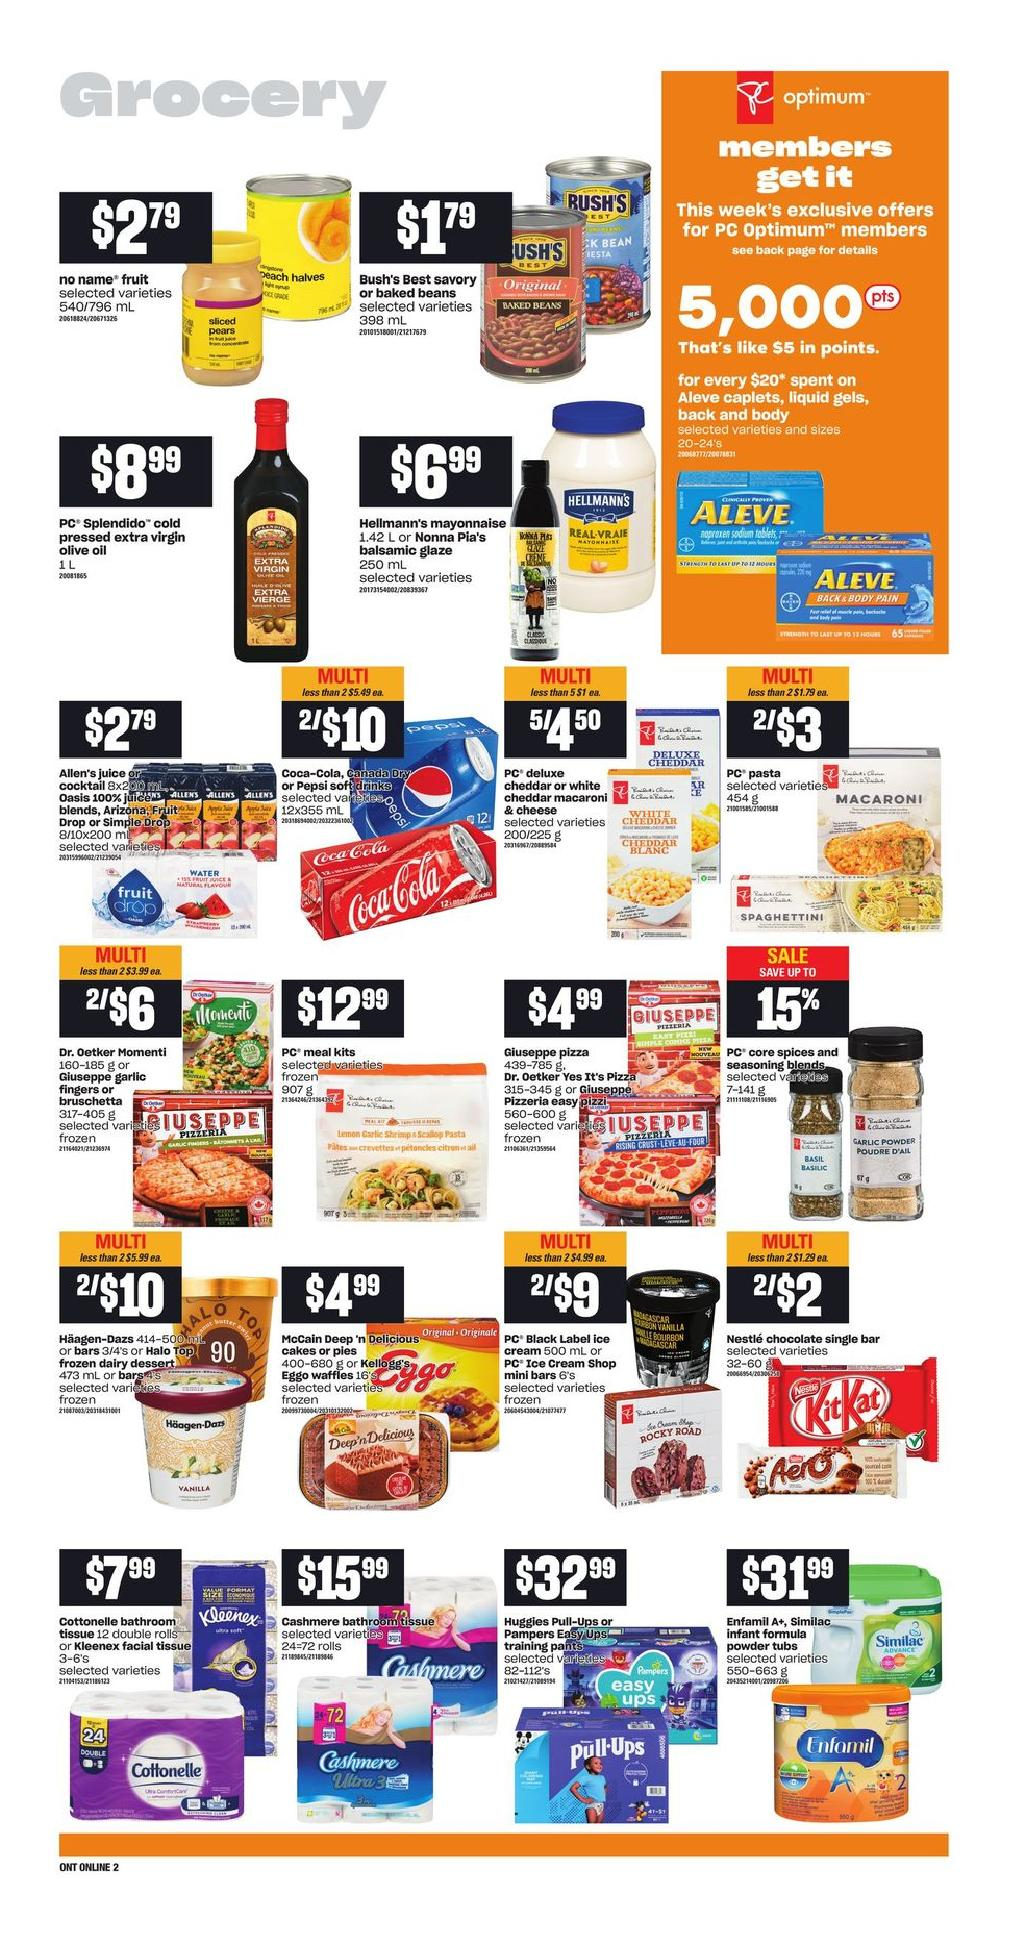 08 Loblaws Flyer April 15 April 21 2021